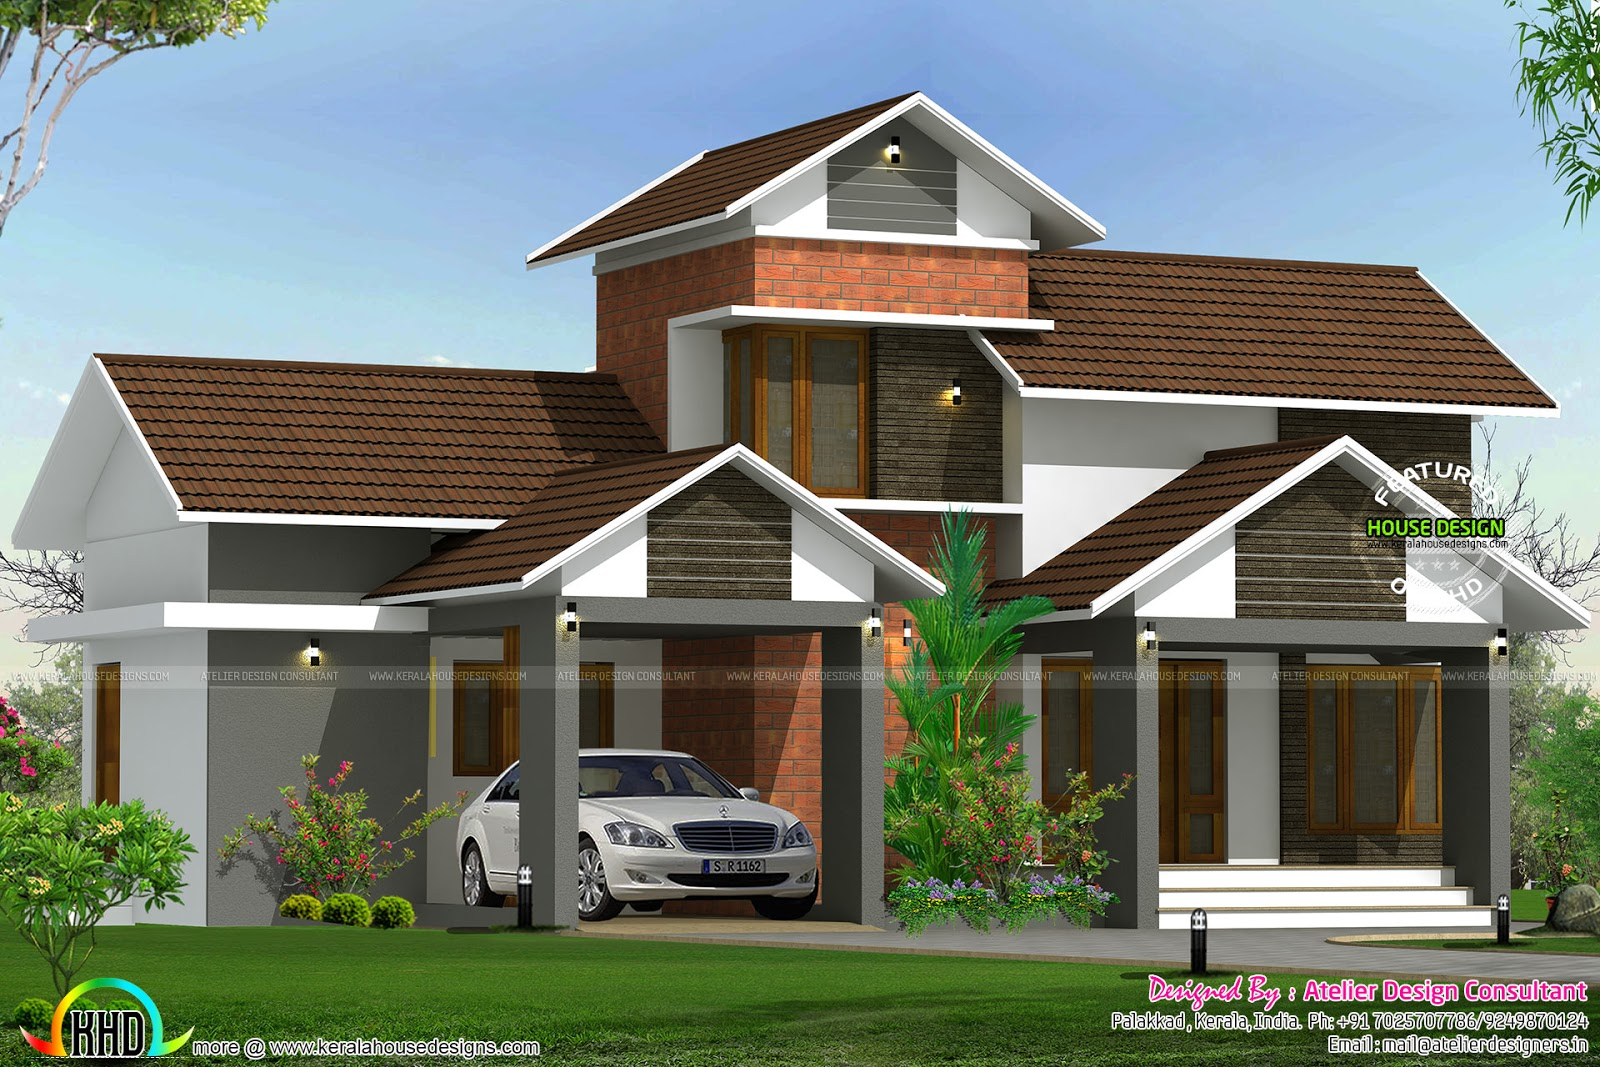 20 lakhs house plan - Kerala home design and floor plans